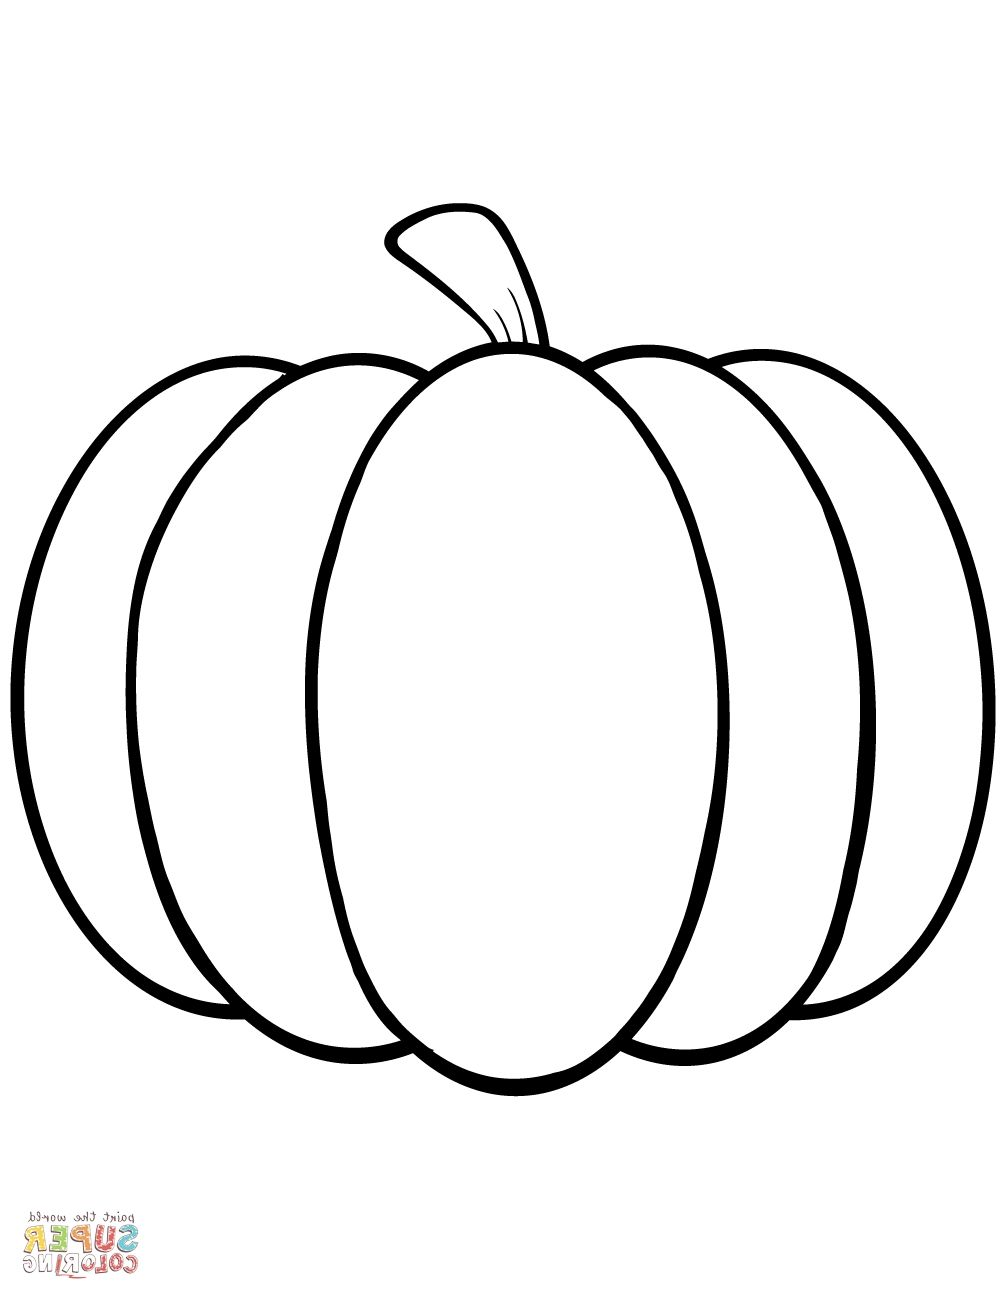 Pumpkin Coloring Sheets Pumpkin Coloring Sheet Pumpkin Coloring Template Pumpkin Coloring Pages